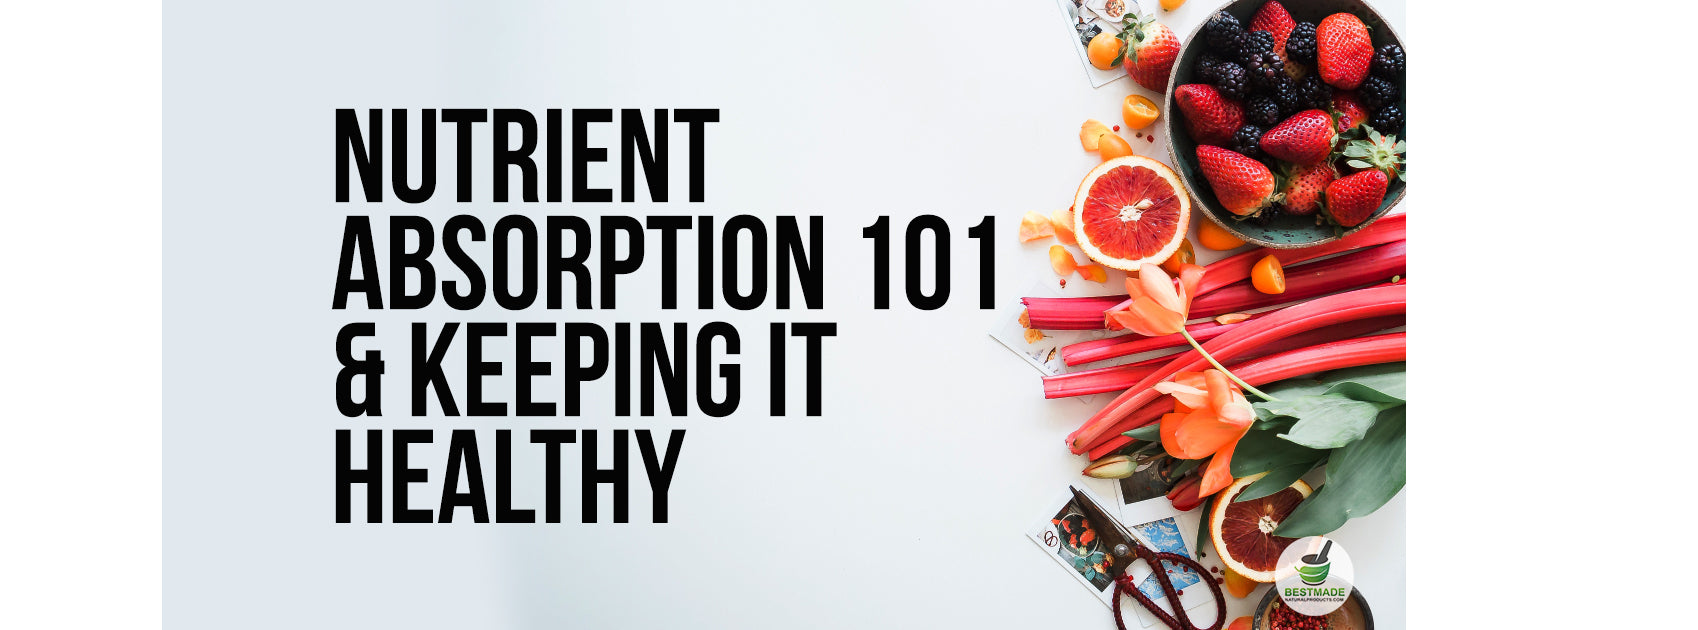 Nutrient  Absorption 101  & Keeping It Healthy